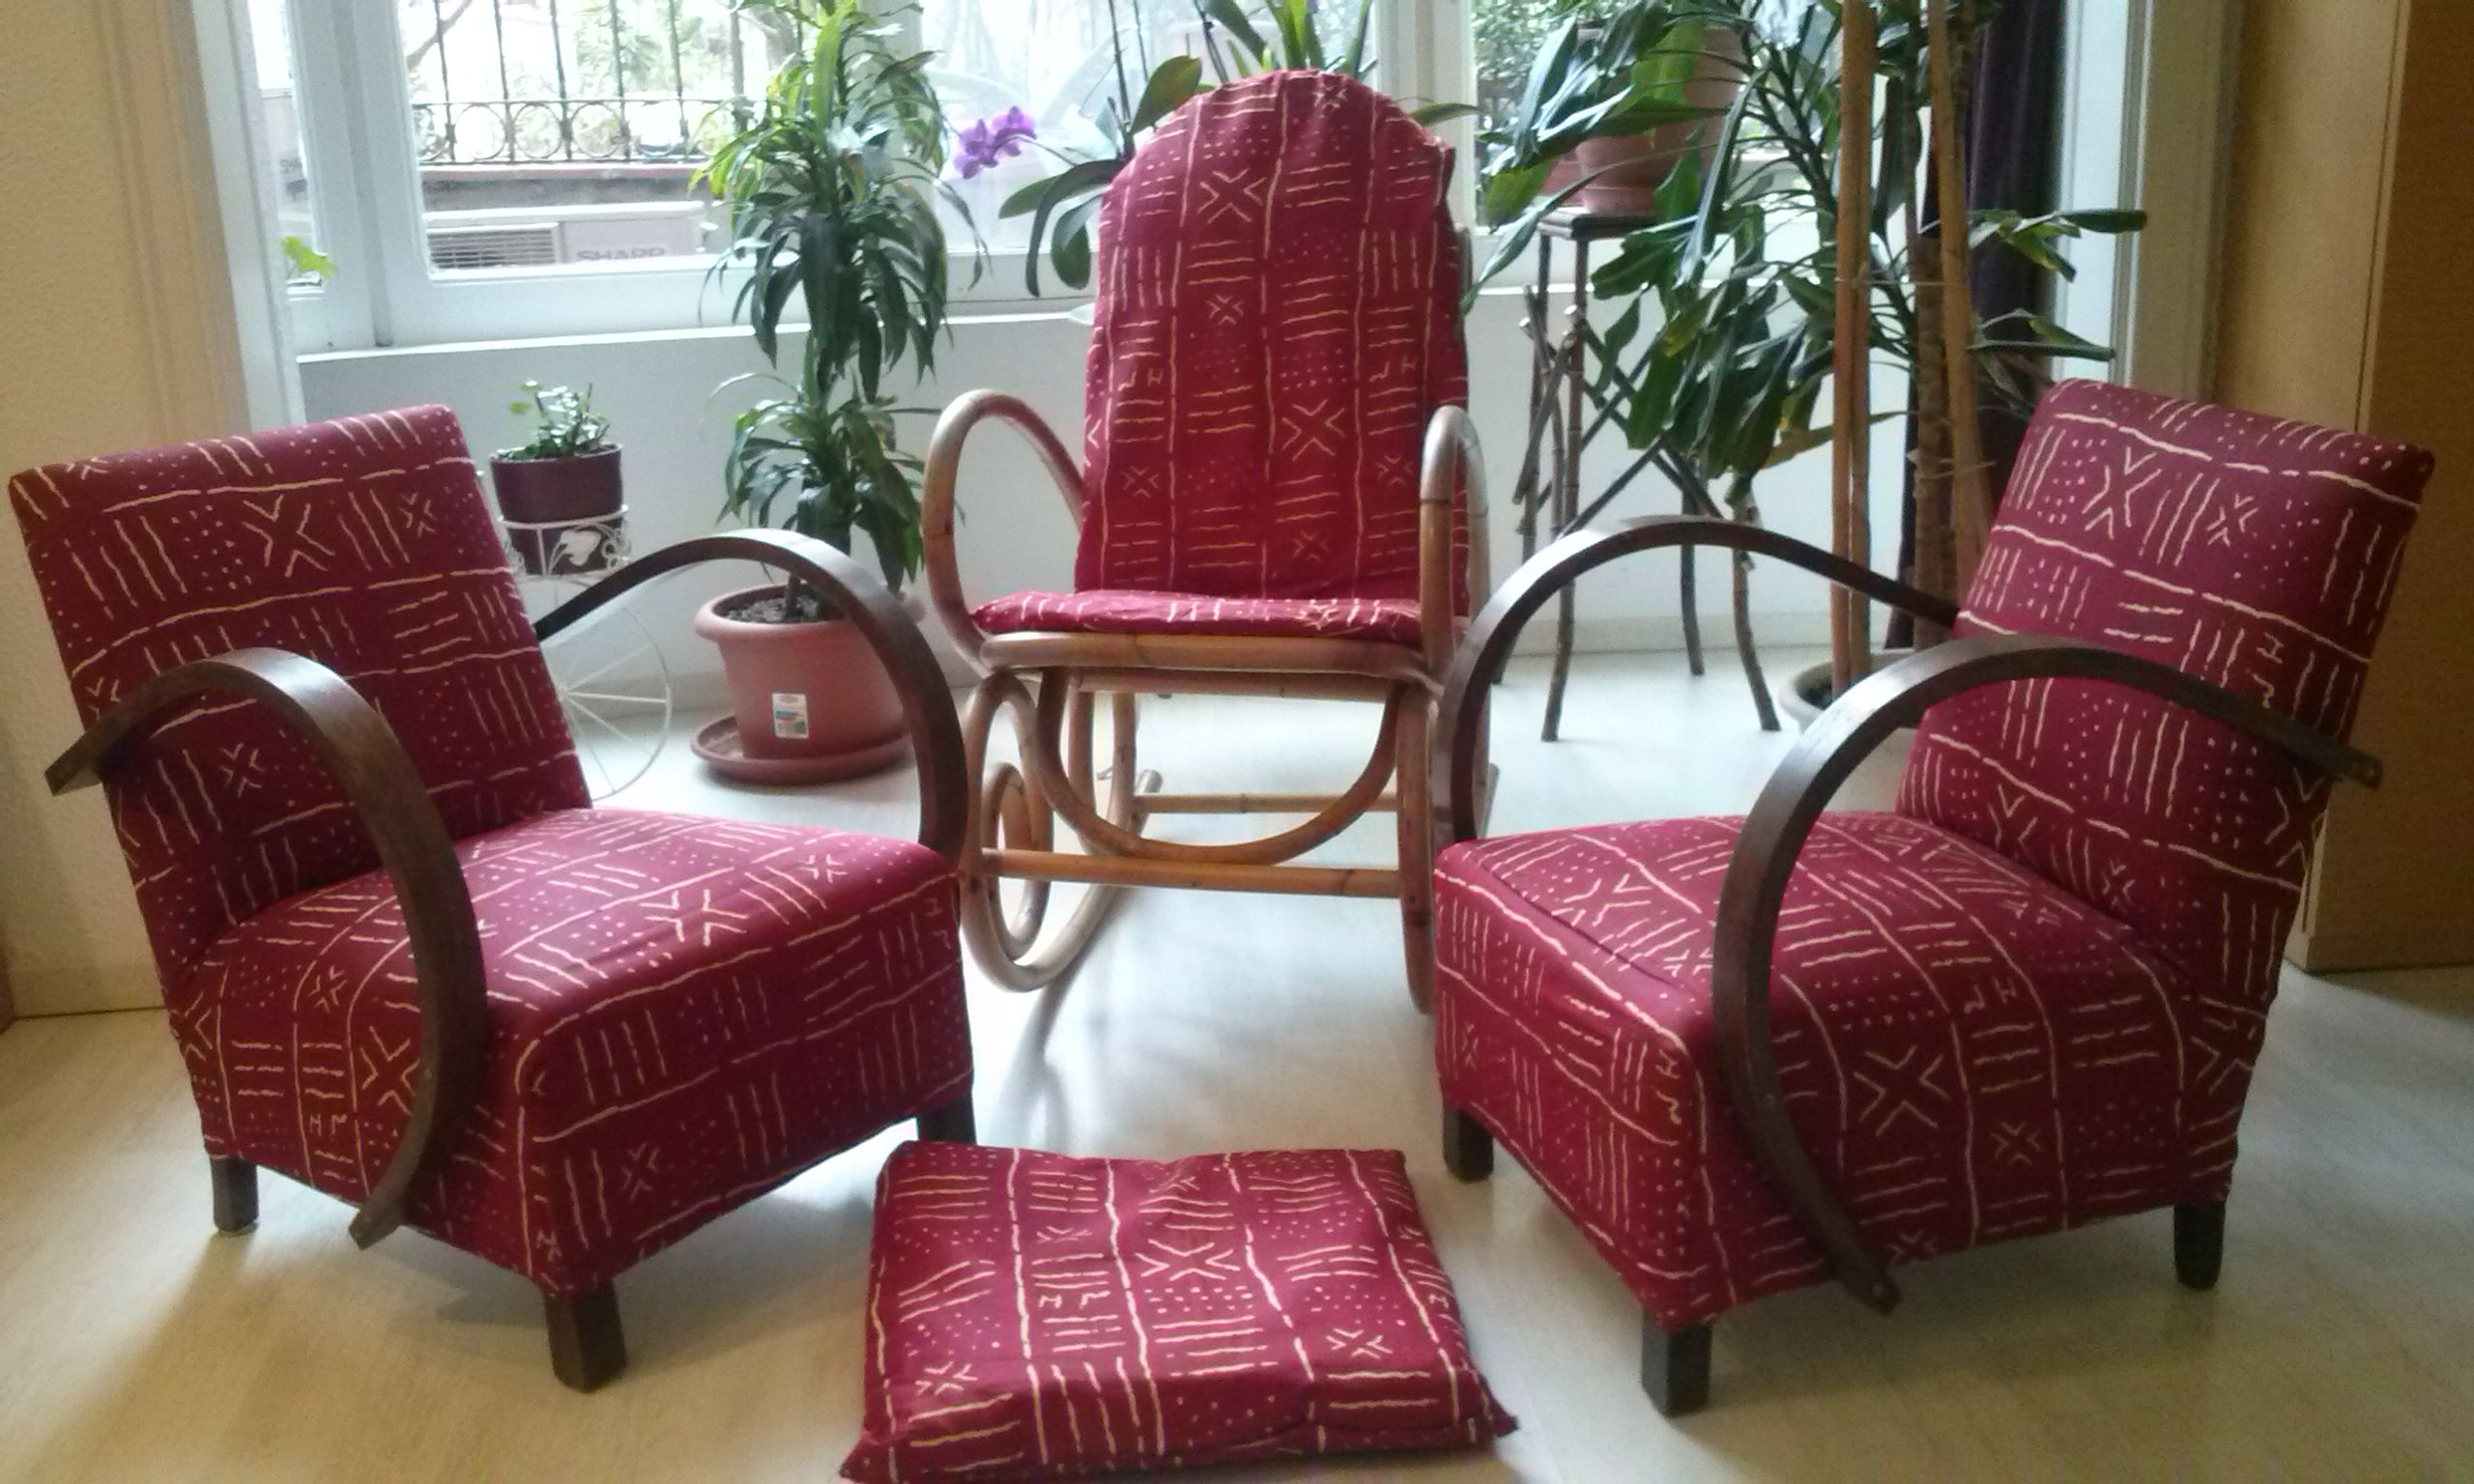 Upholstery with African textiles